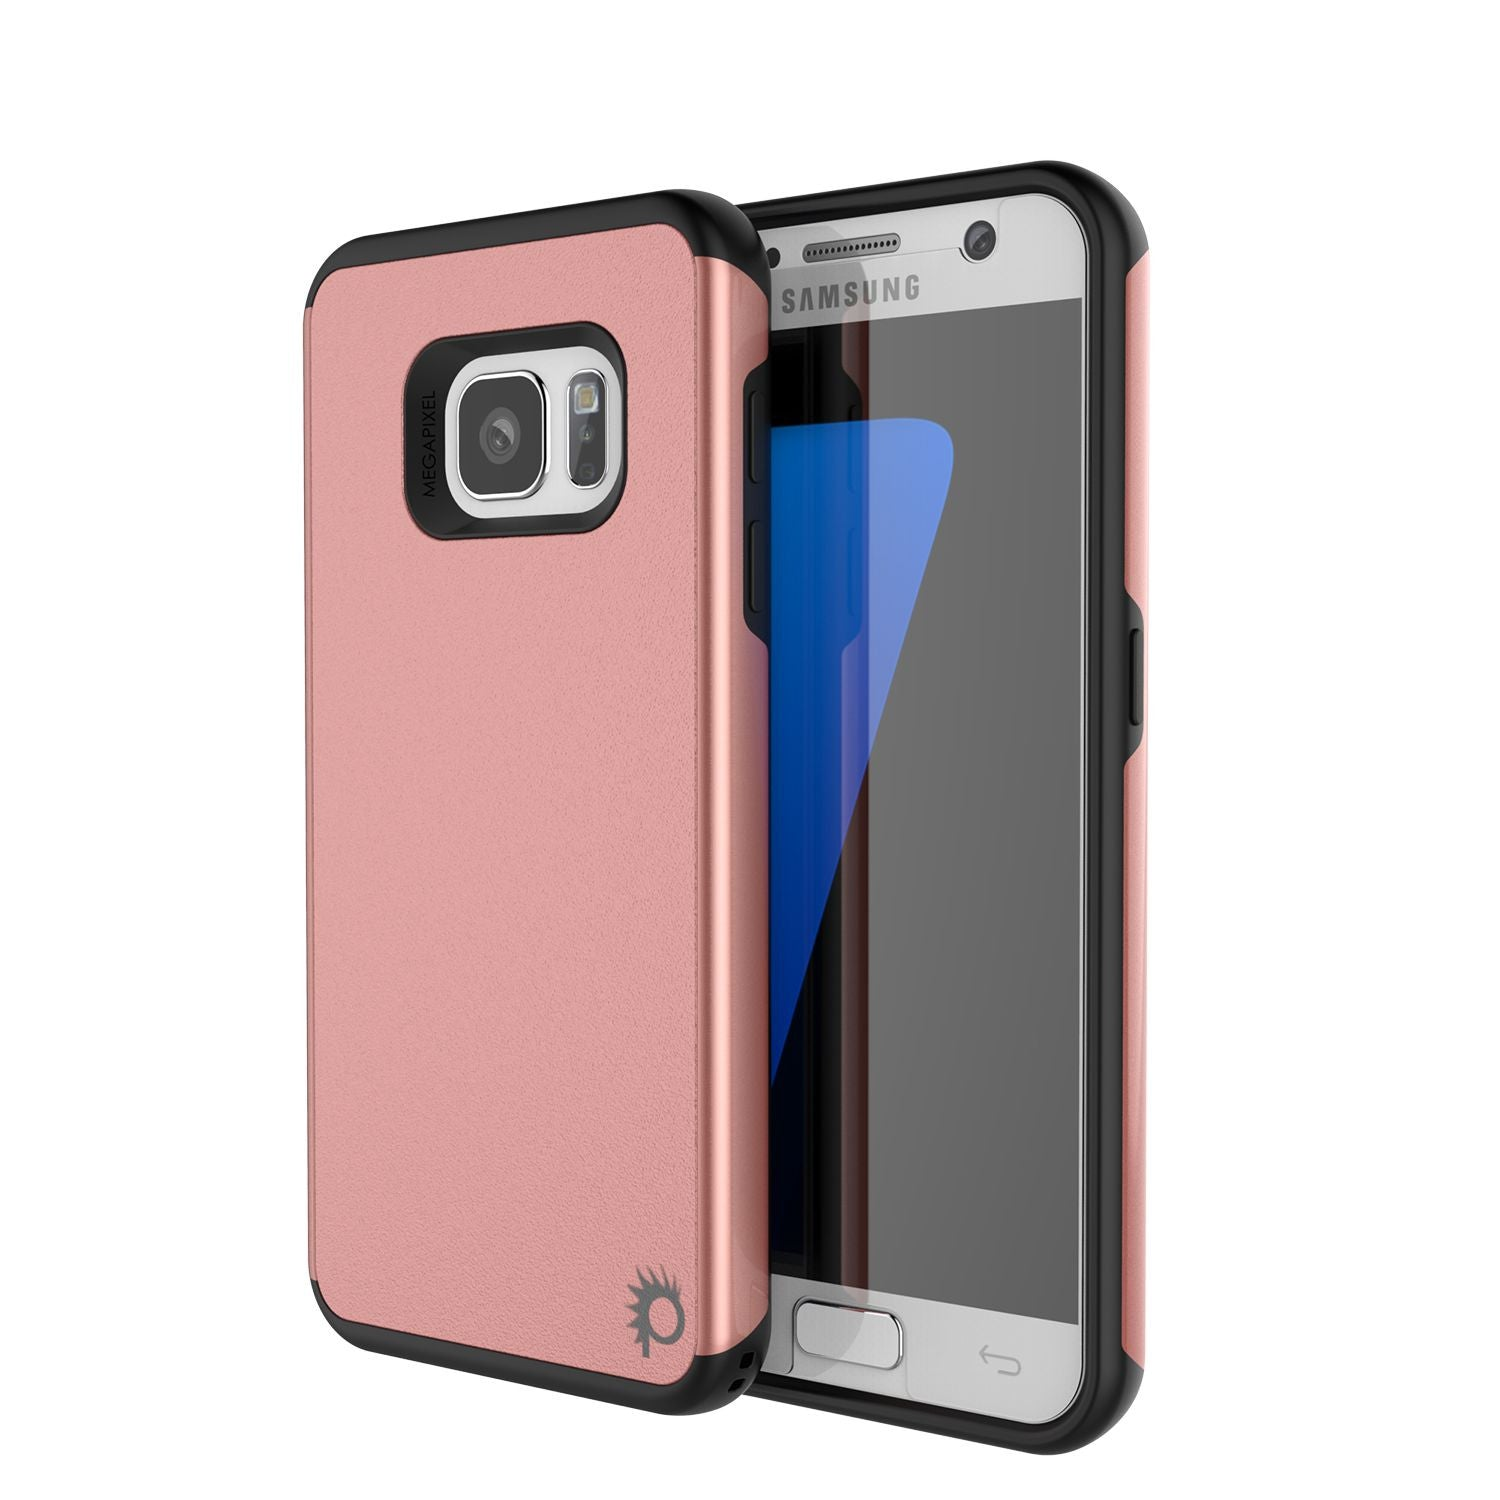 Galaxy s7 Case PunkCase Galactic Rose Gold Series Slim Armor Soft Cover Case w/ Tempered Glass